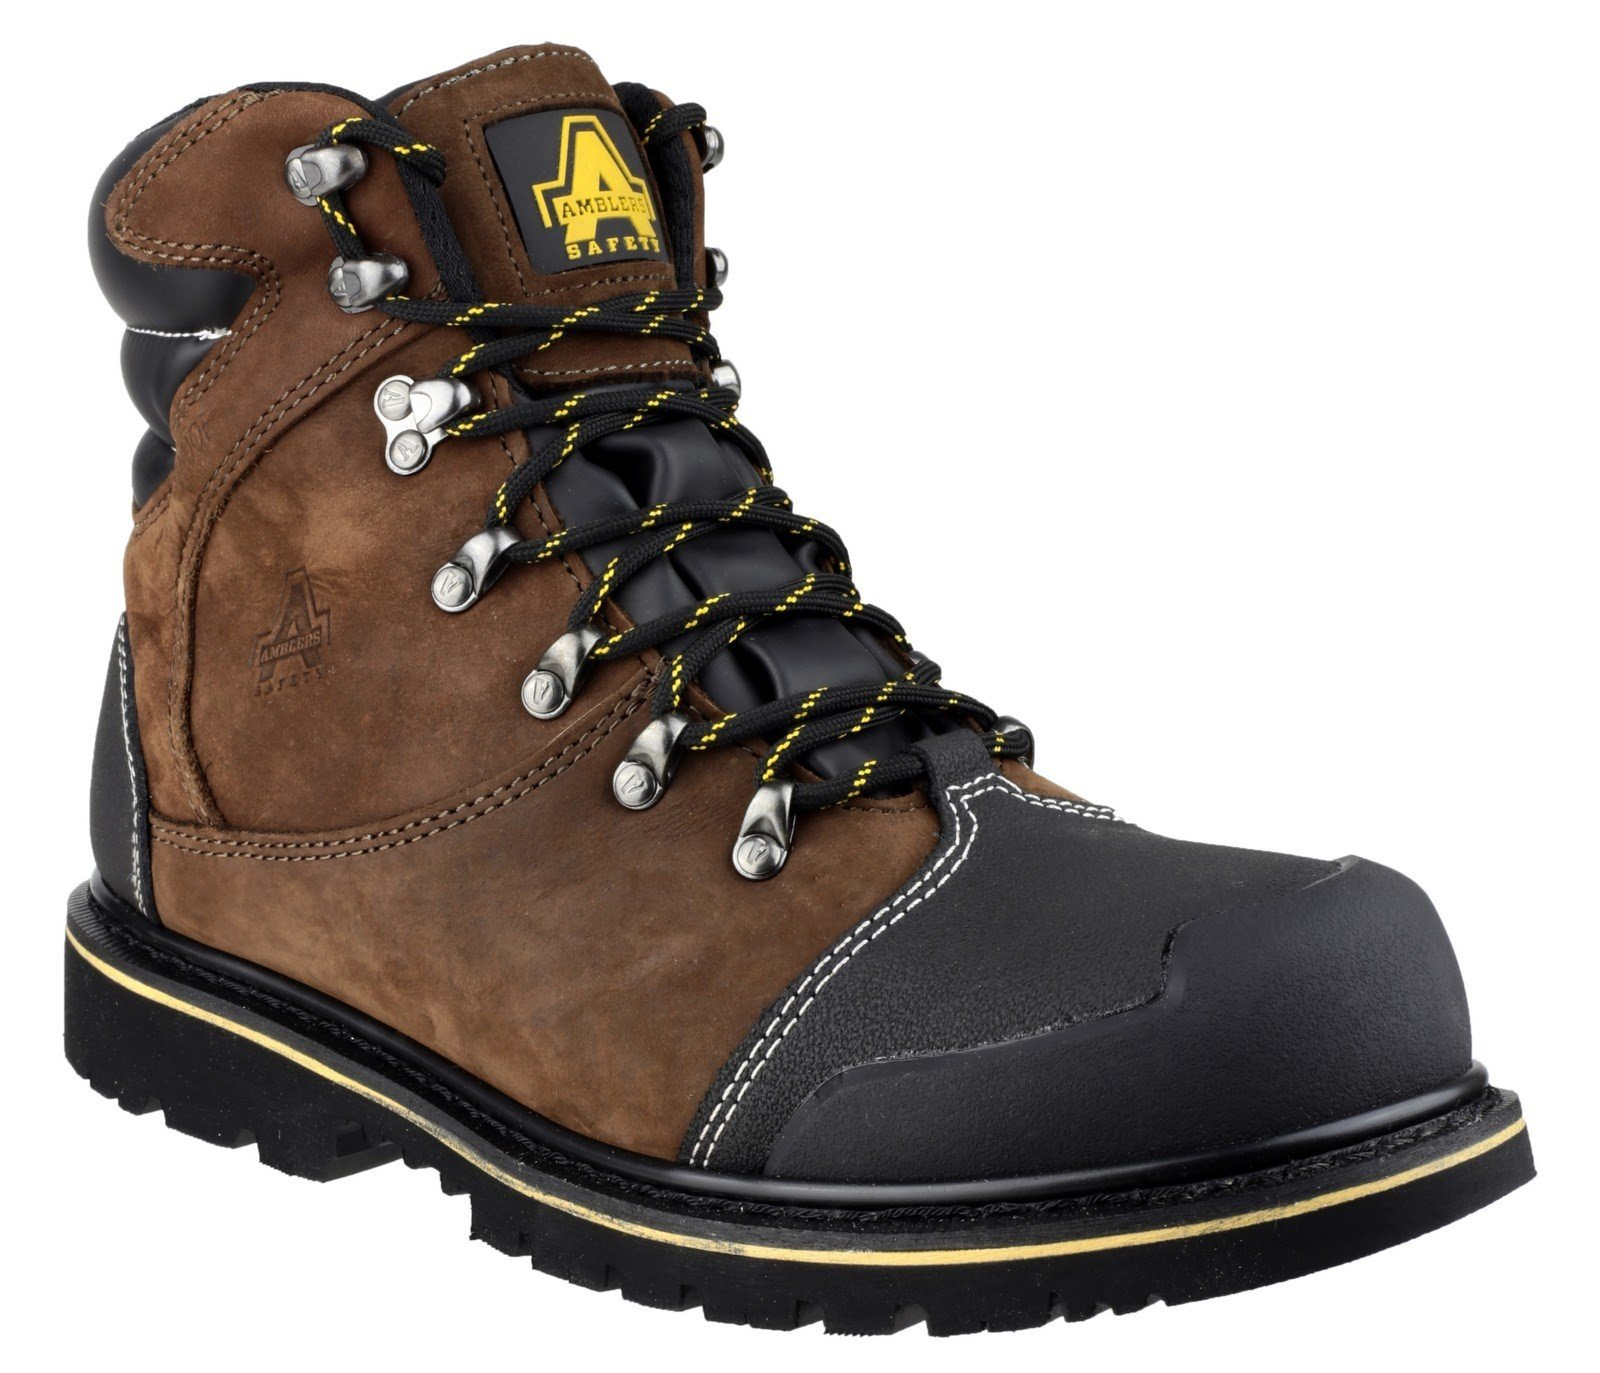 Amblers Unisex Safety Goodyear Waterproof Lace Up Industrial Boot Brown 20435 - Brown 6